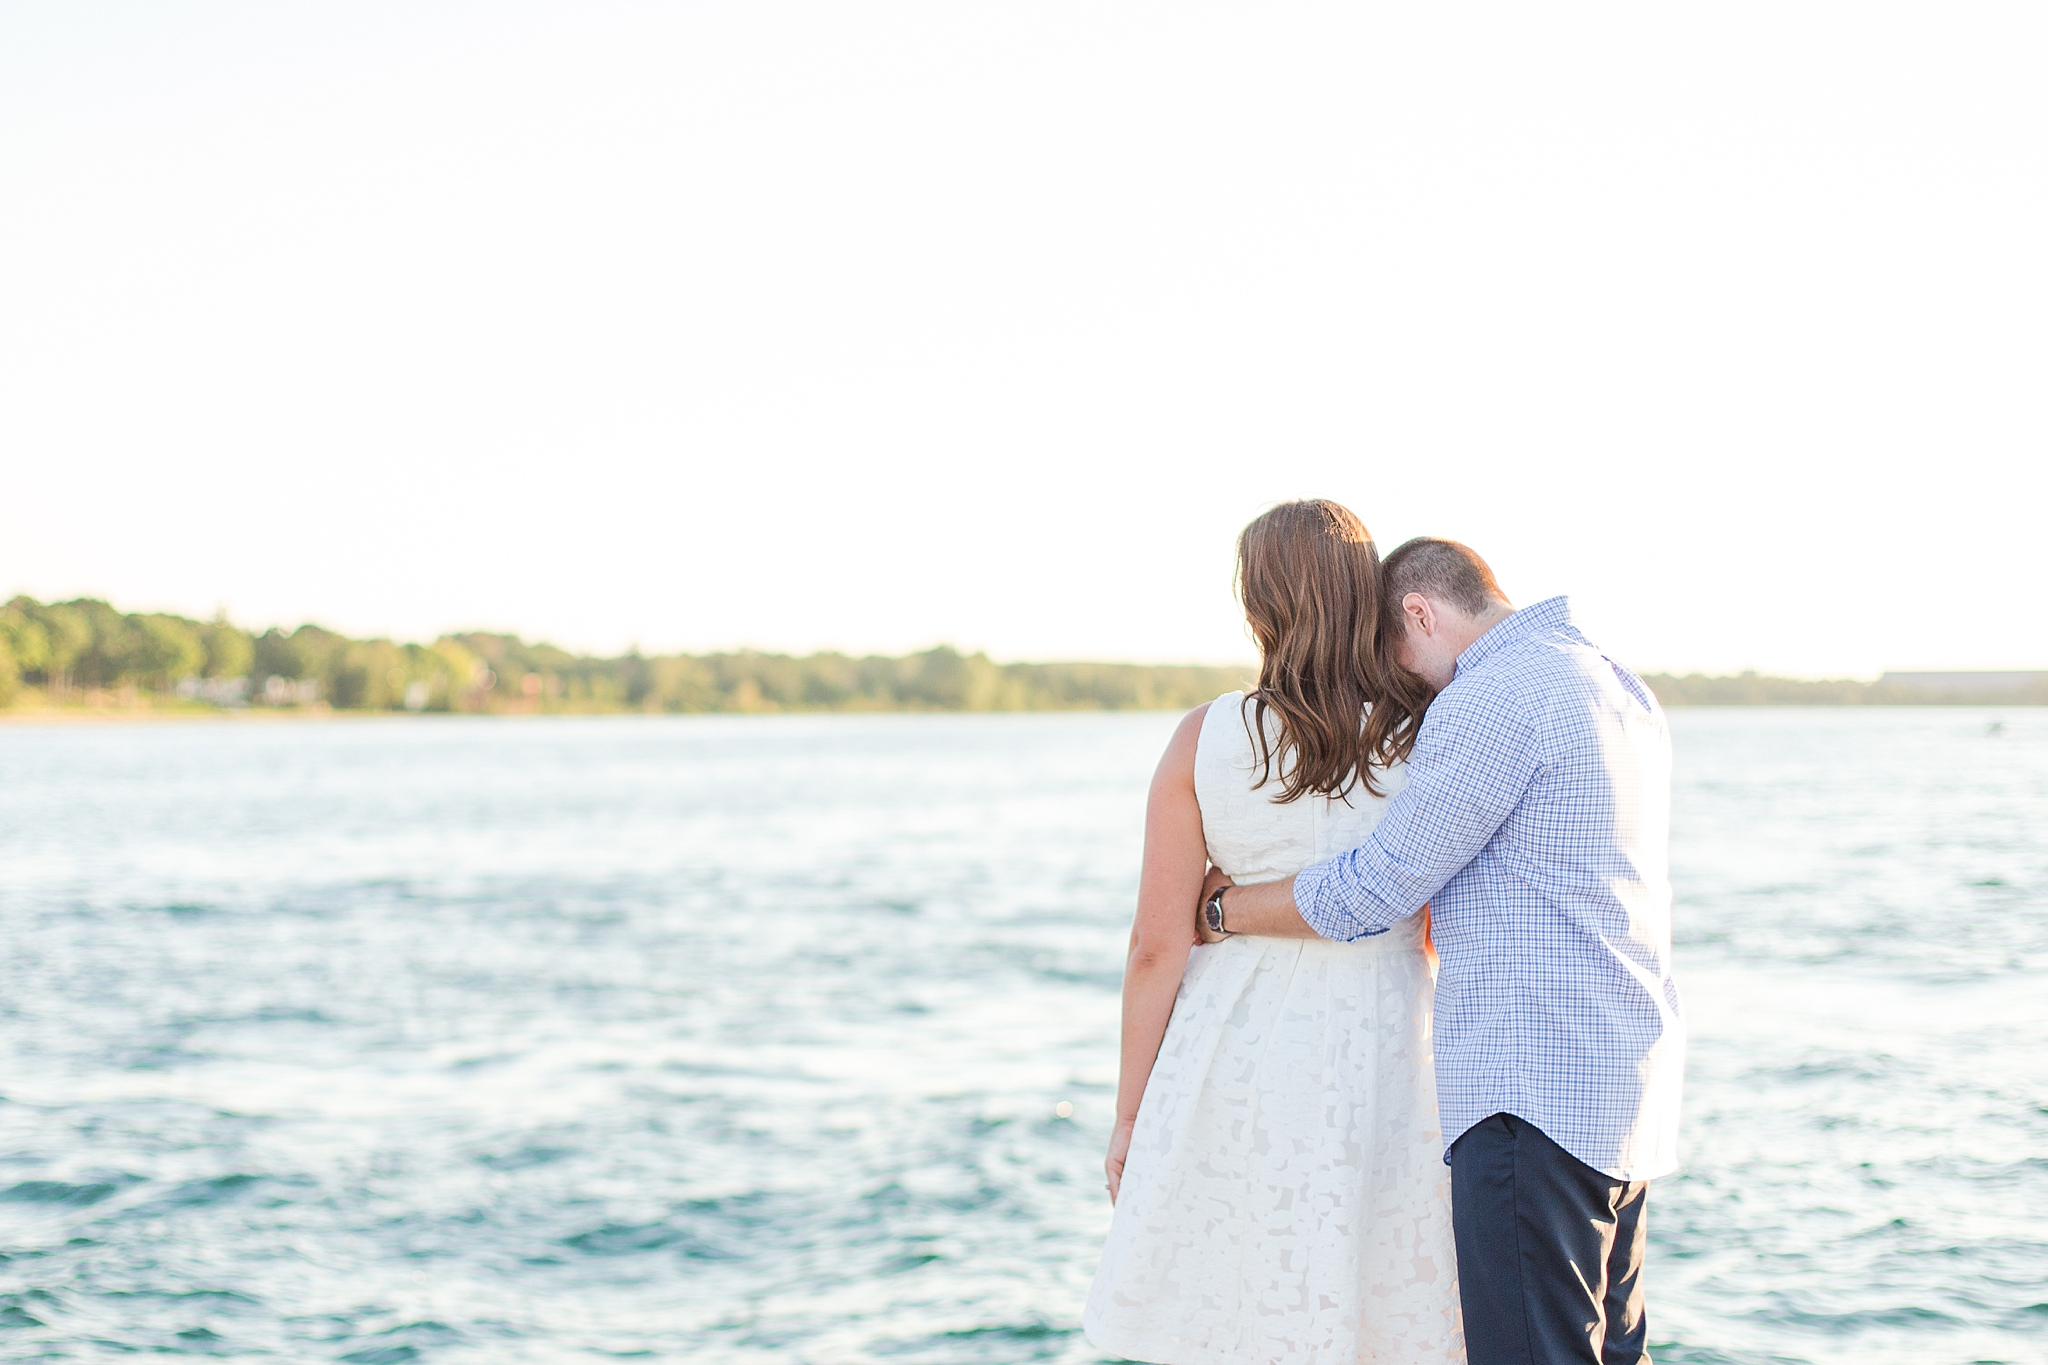 waterfront-lighthouse-engagement-photography-in-charlevoix-mi-by-courtney-carolyn-photography_0012.jpg